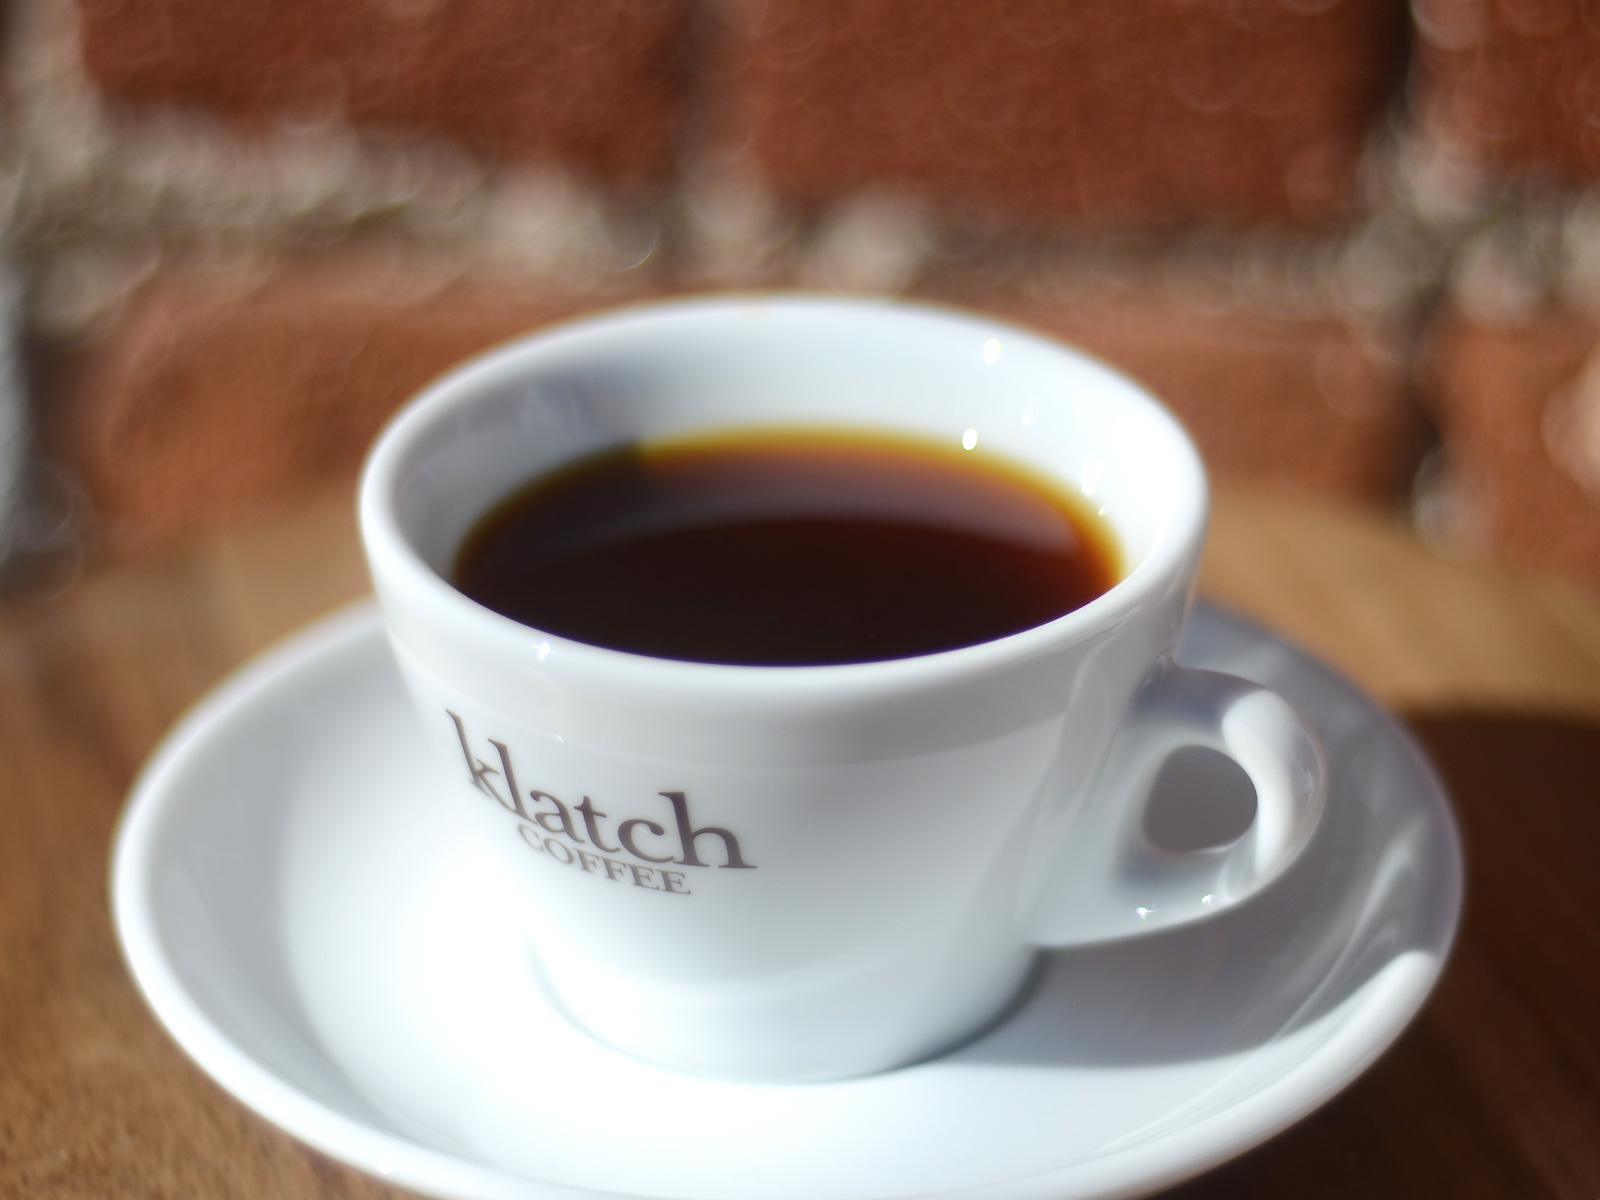 EC: This Is What the World's Most Expensive Coffee Tastes Like